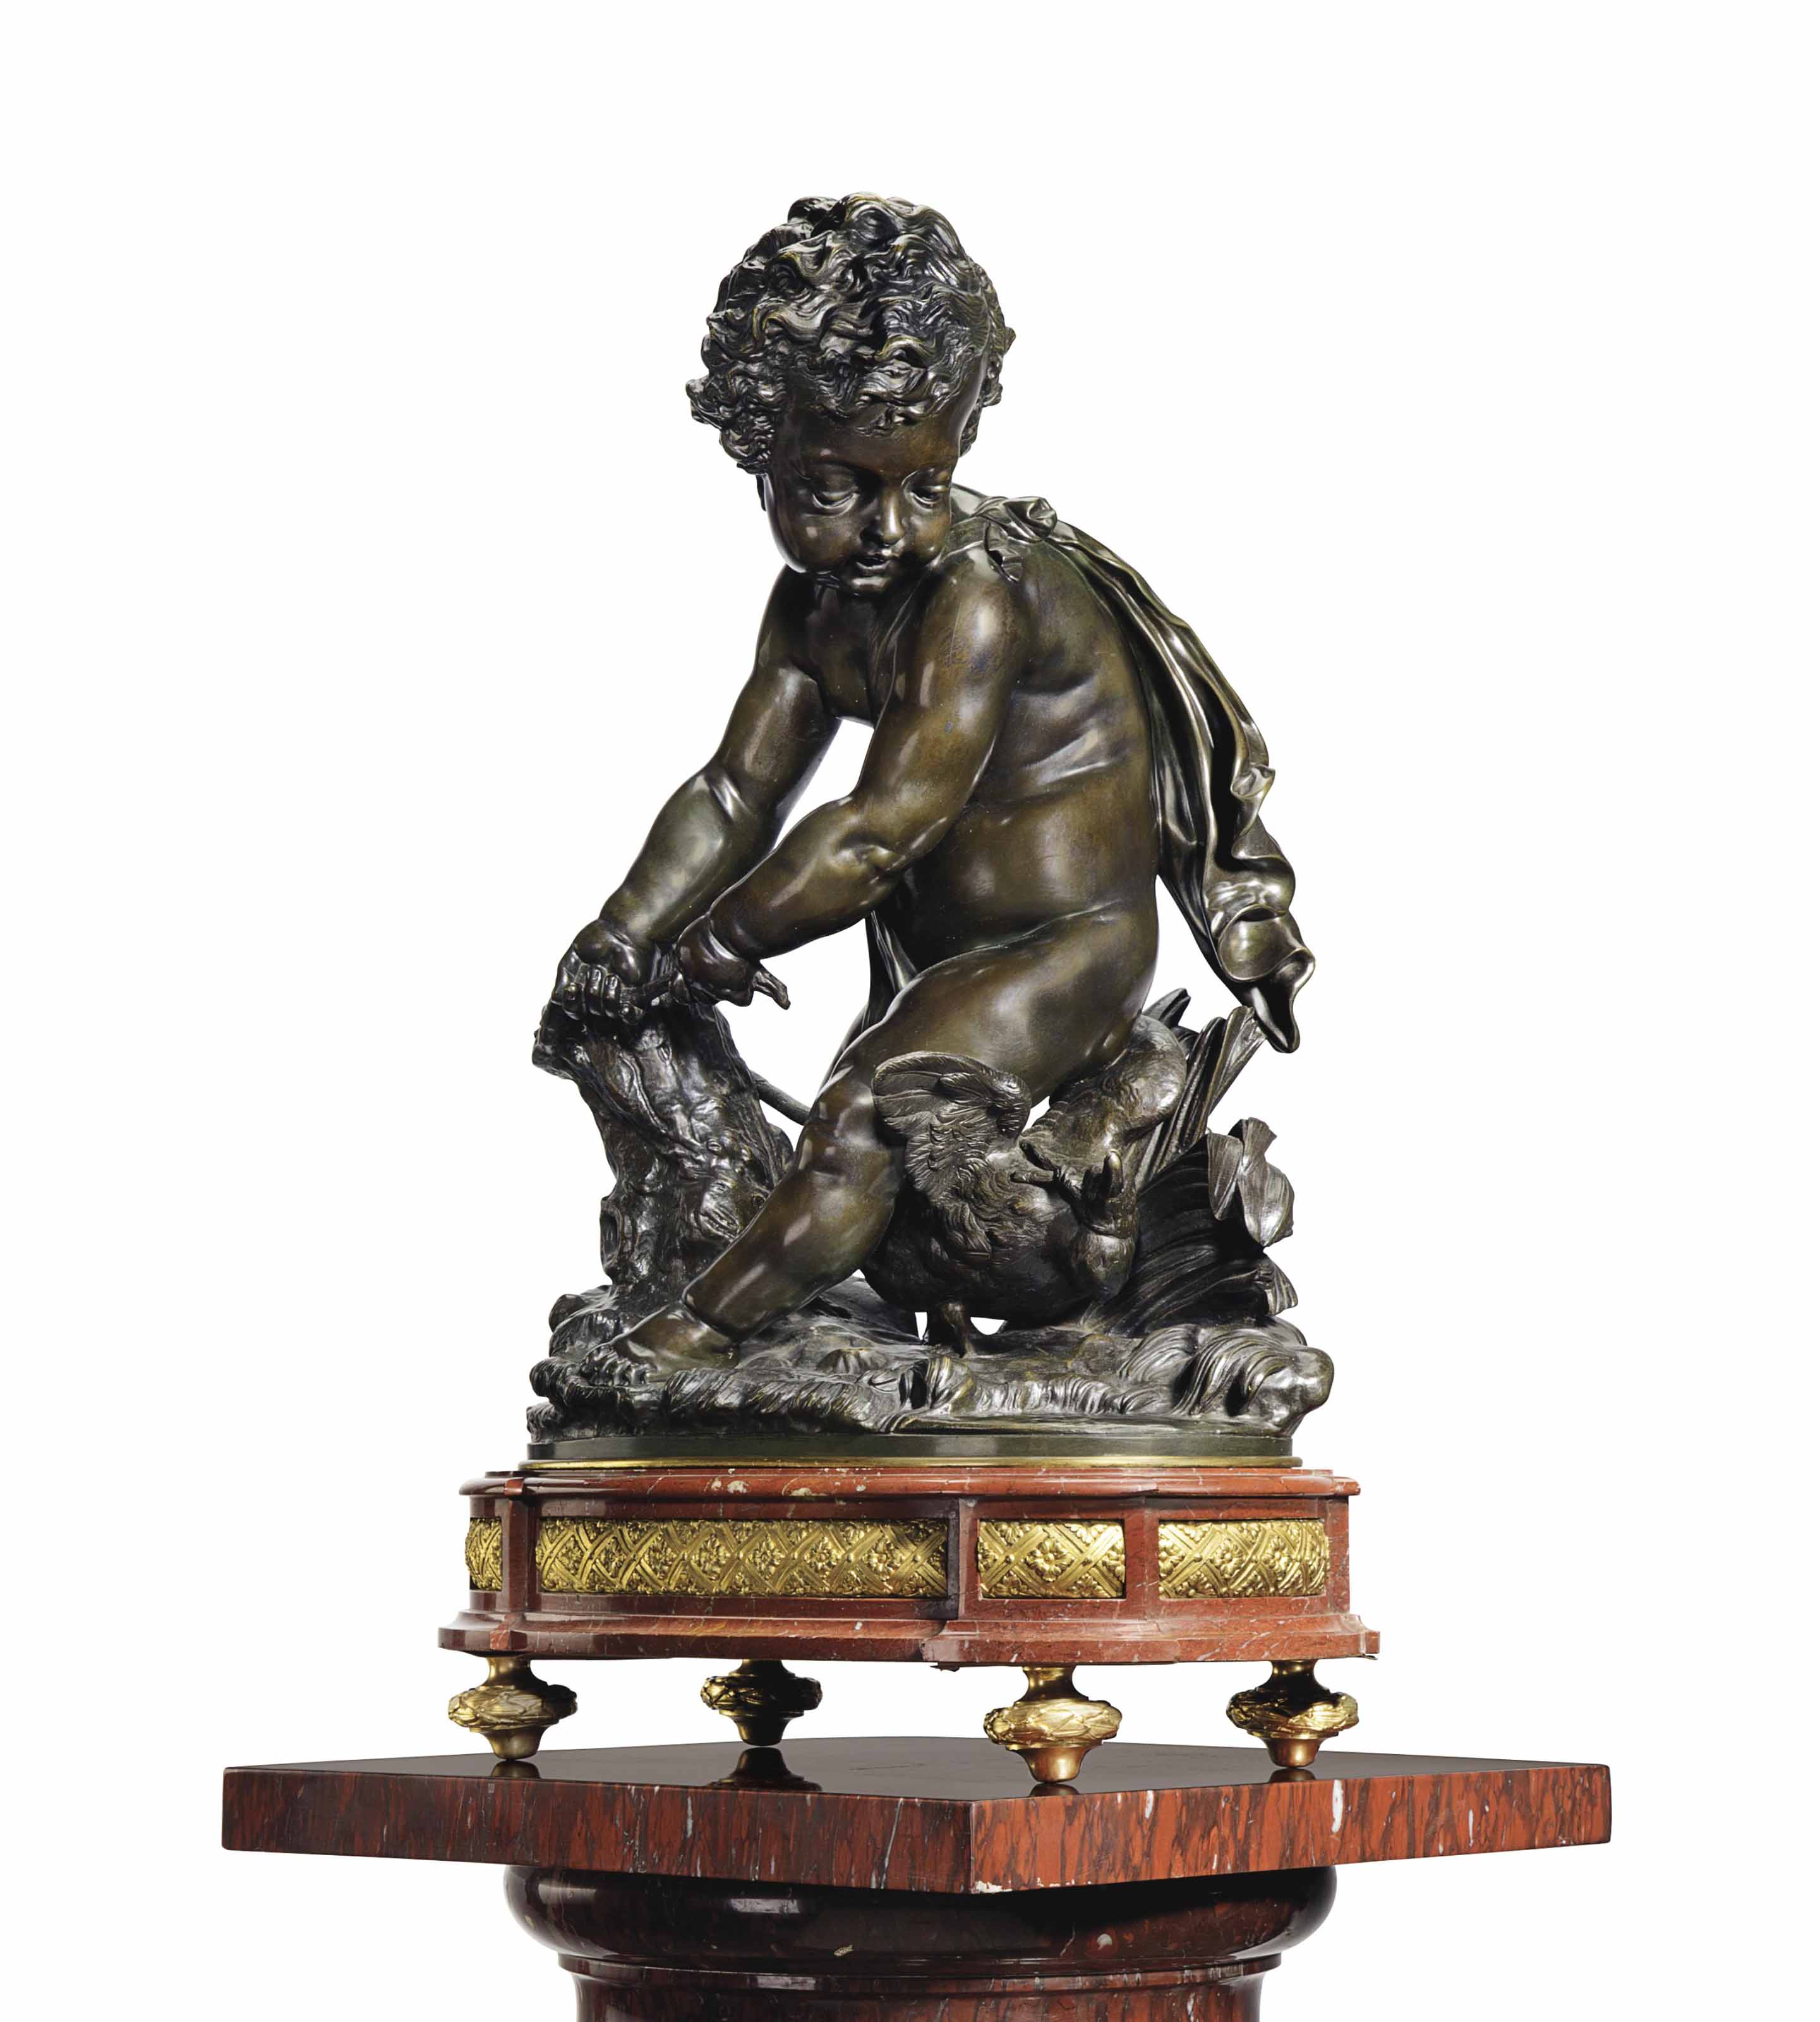 A FRENCH ORMOLU, PATINATED BRONZE AND ROUGE MARBLE FIGURE OF A PUTTO HARNASSING A DOVE